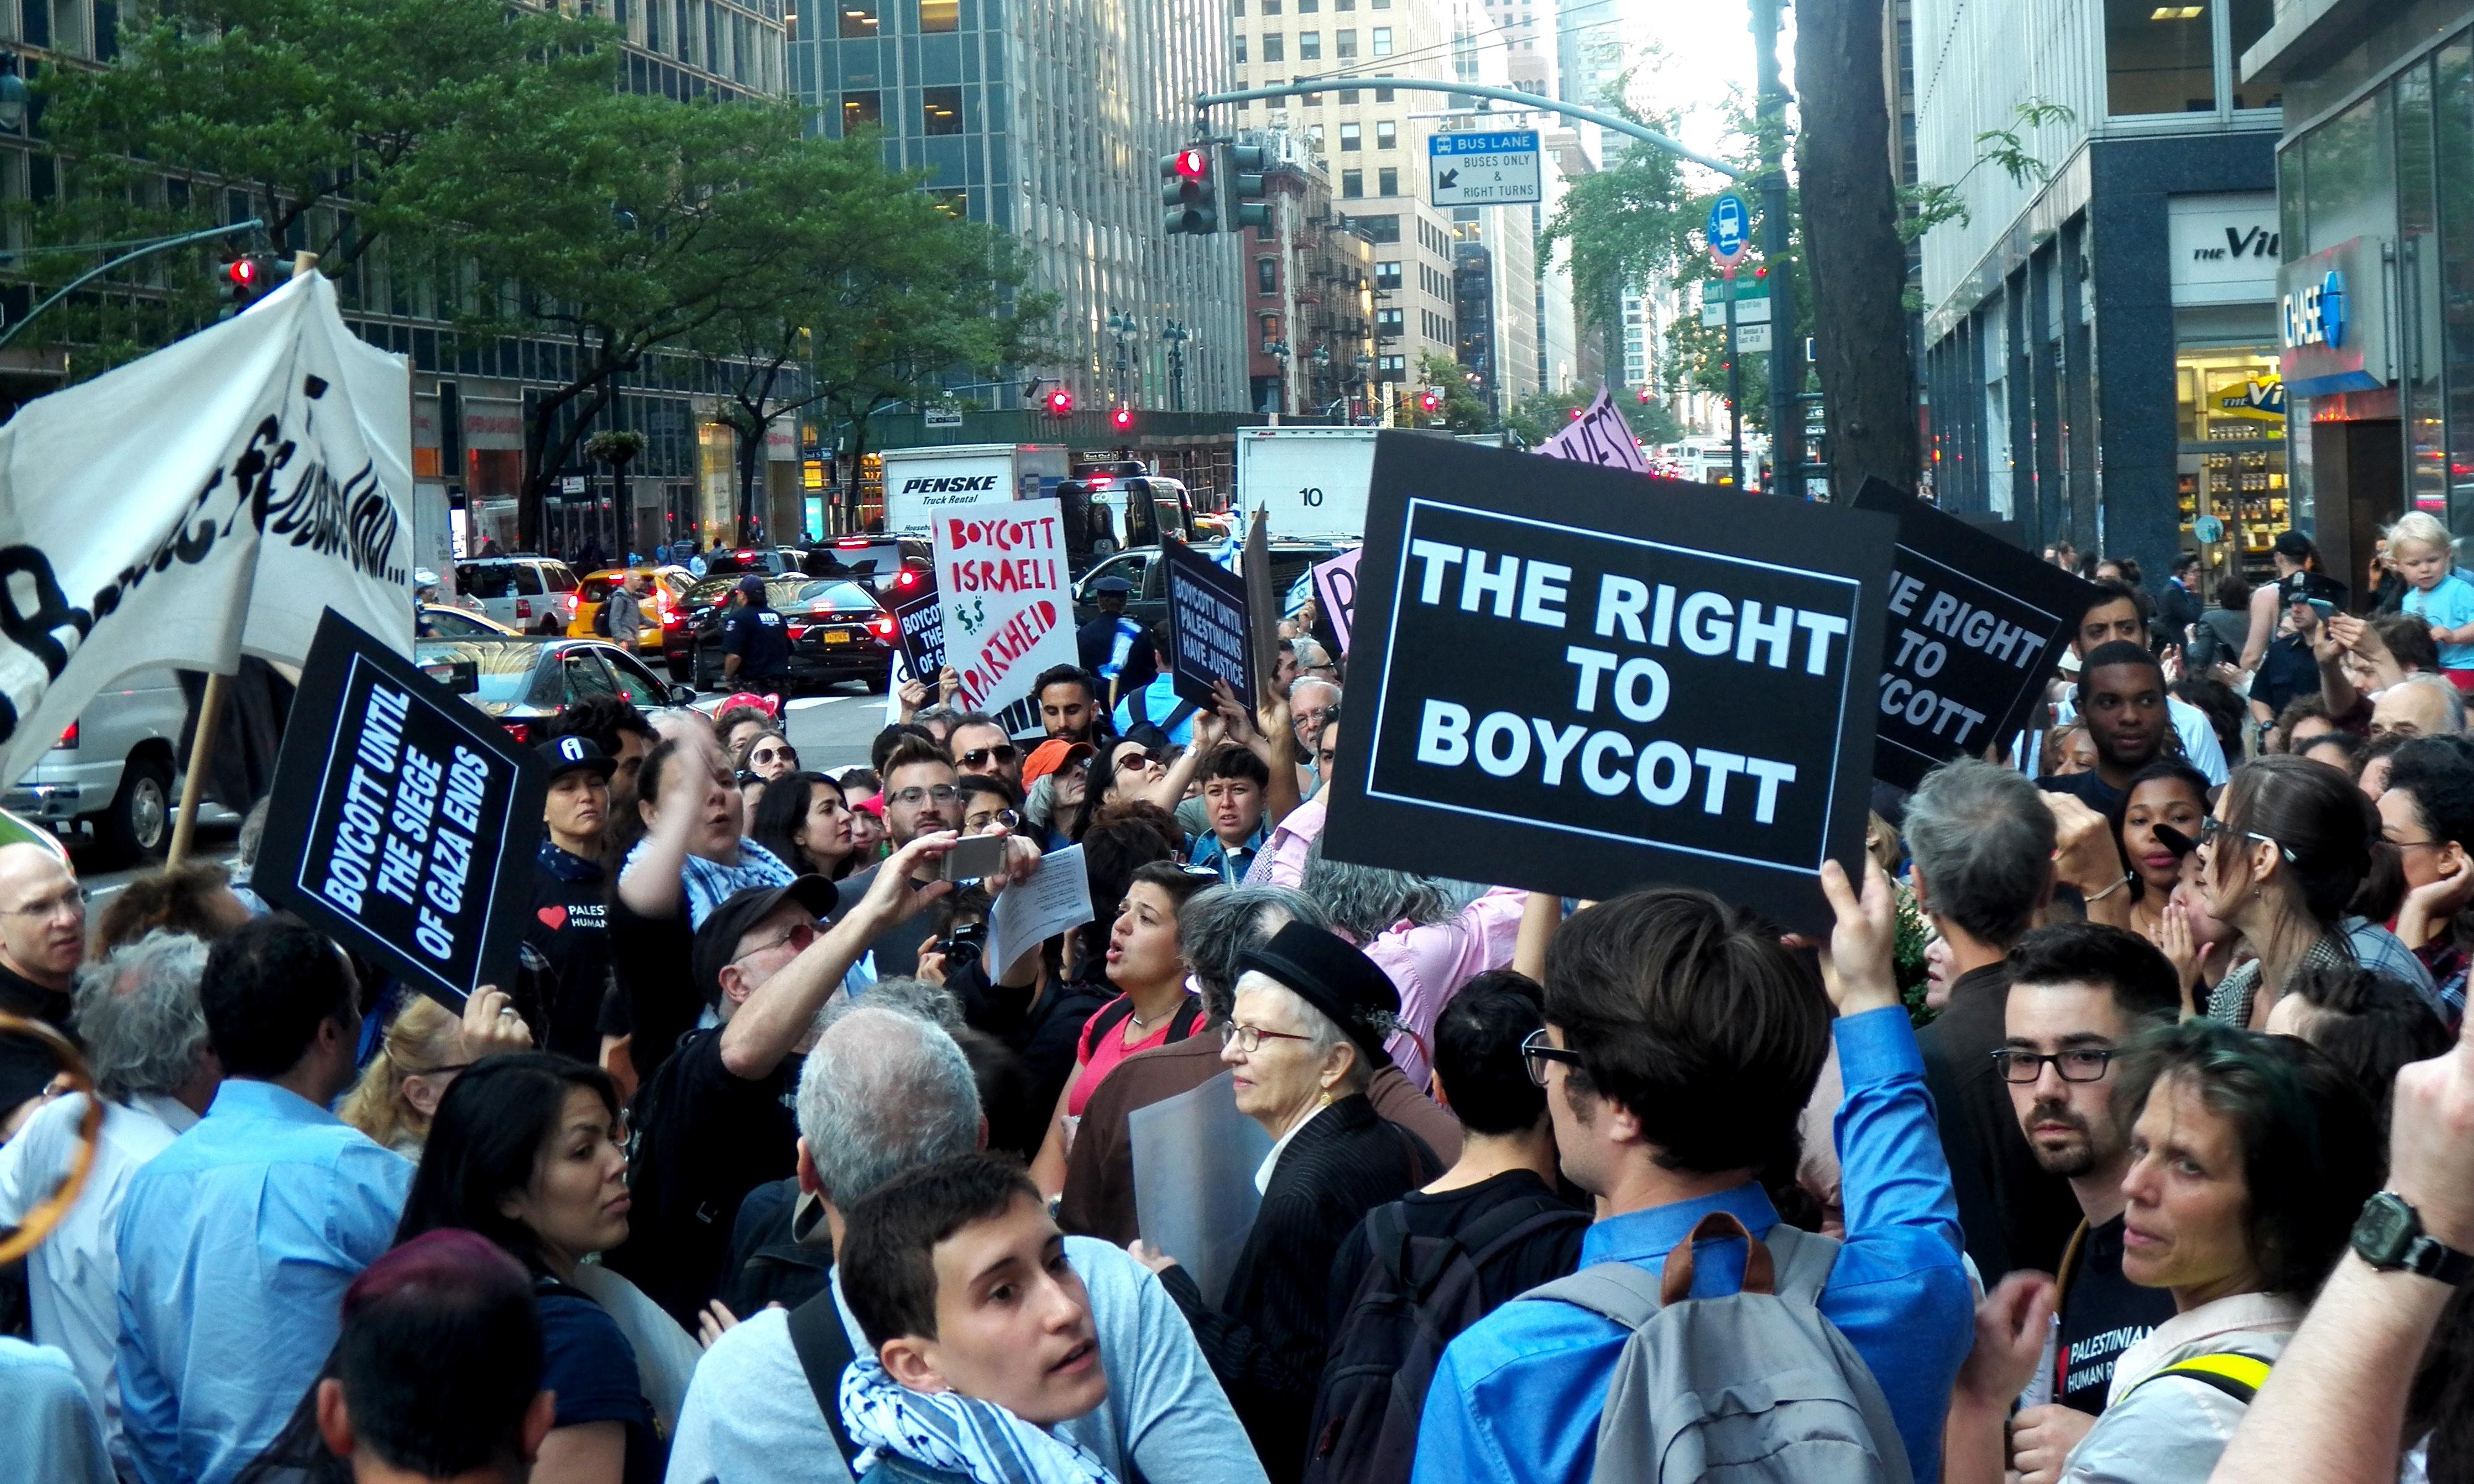 Debunking the myth that anti-Zionism is antisemitic